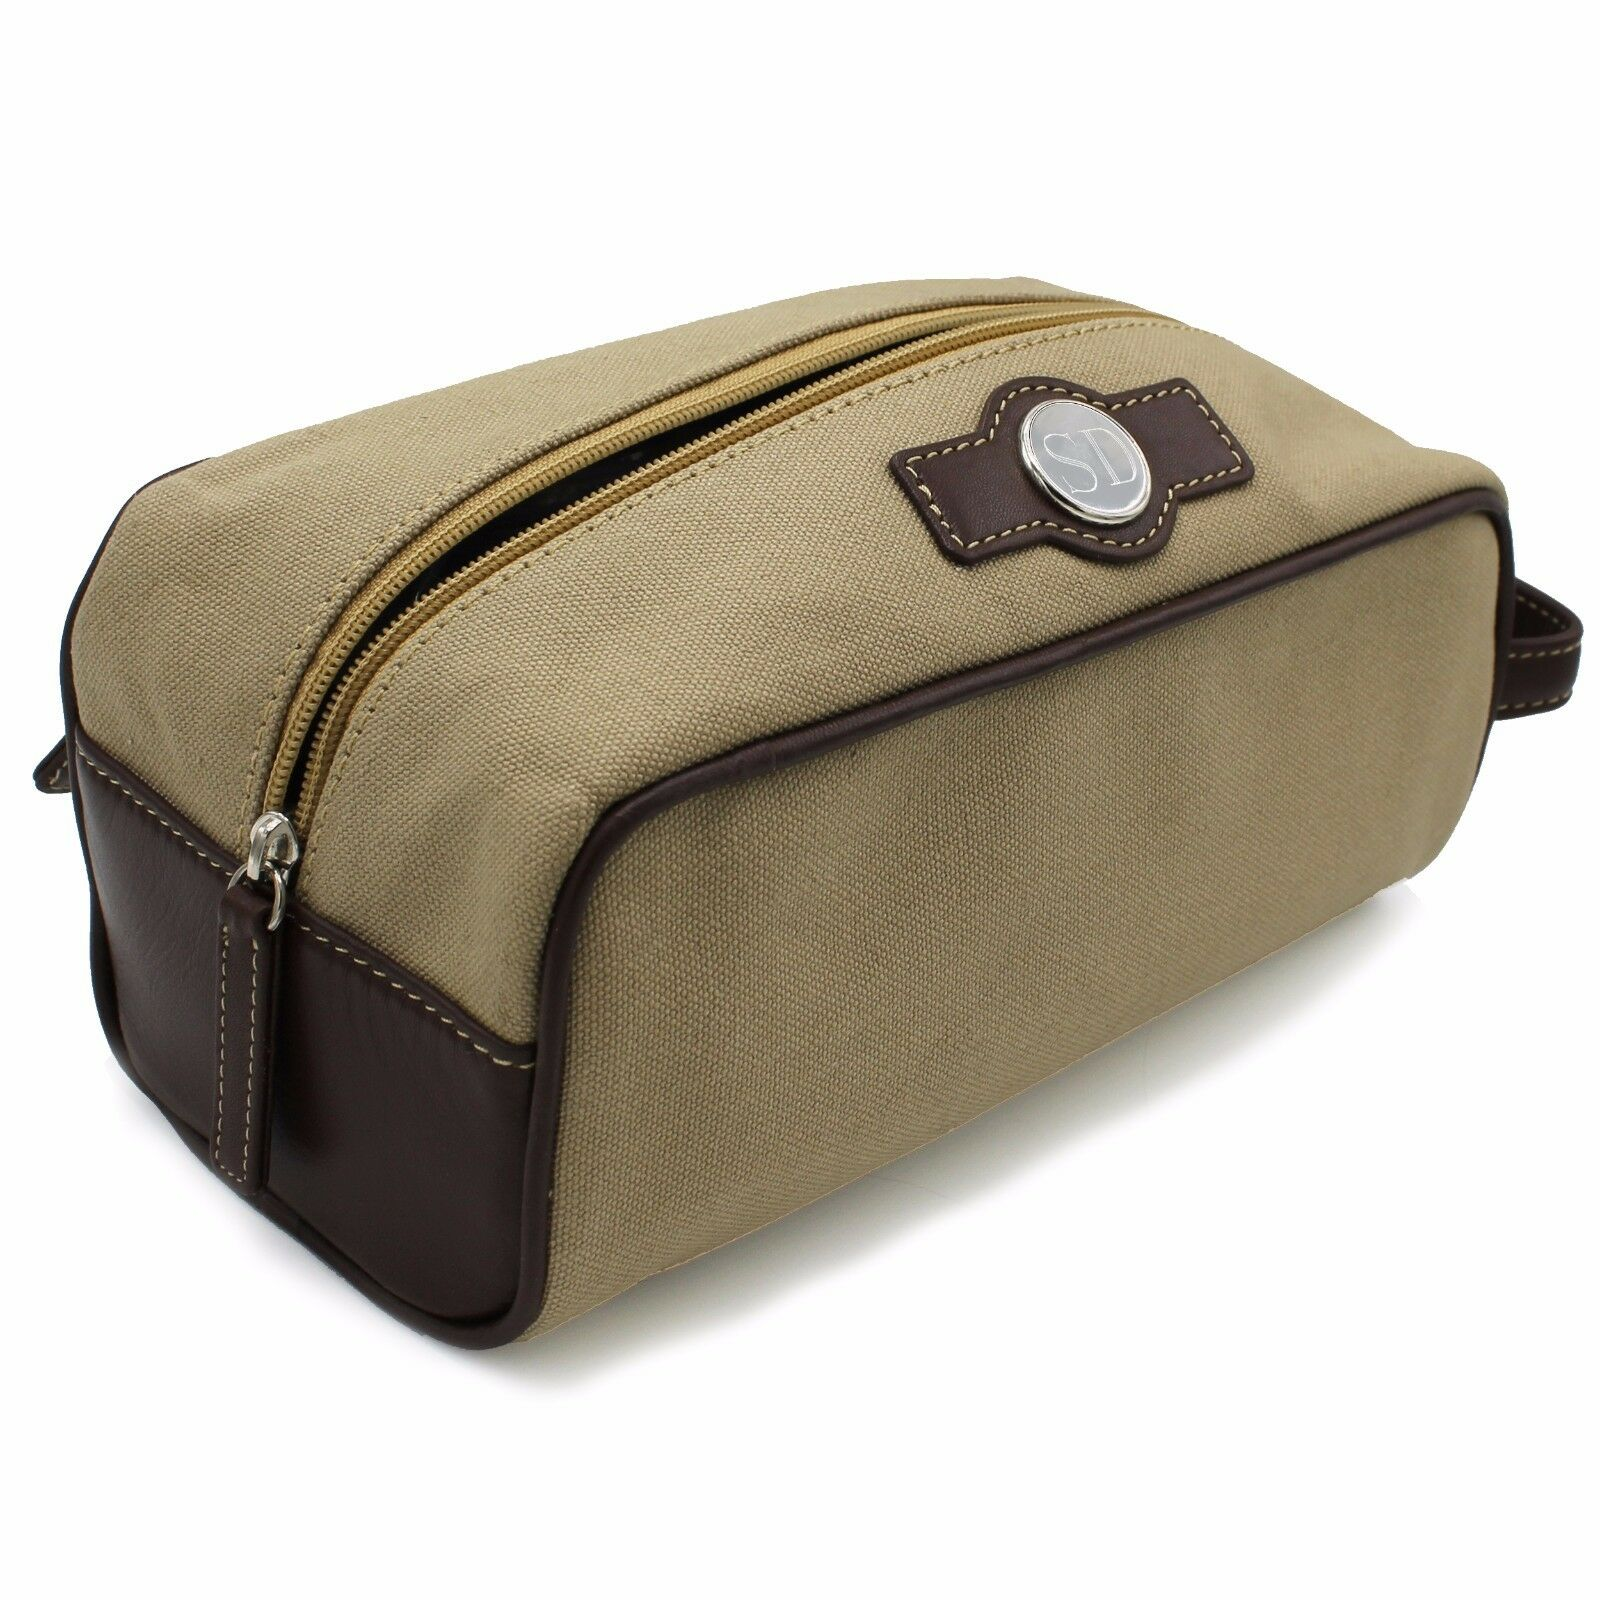 Waxed Cotton Canvas shave and toiletries dopp kit bag with leather handlethe